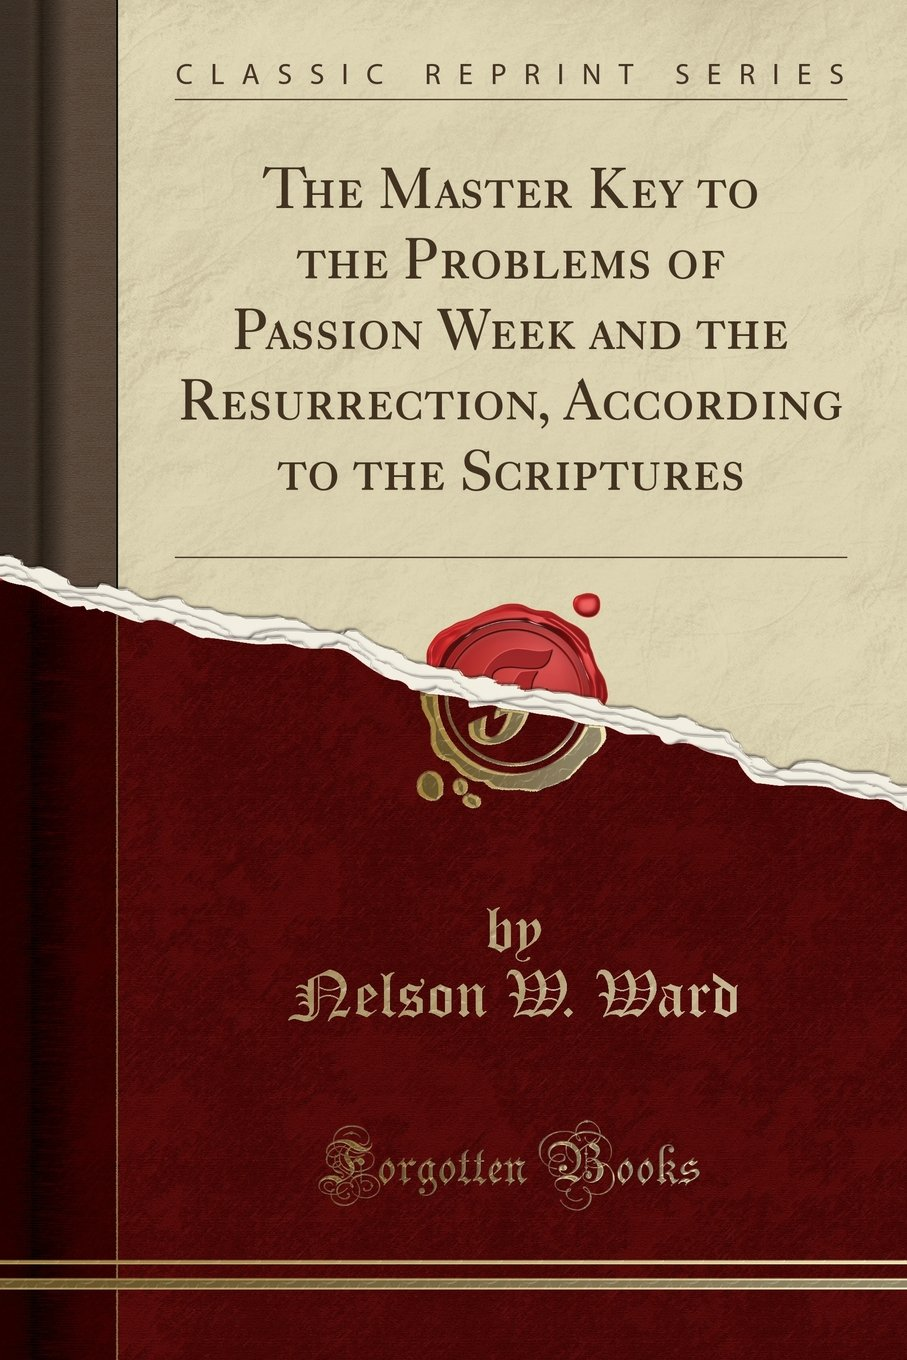 Read Online The Master Key to the Problems of Passion Week and the Resurrection, According to the Scriptures (Classic Reprint) PDF